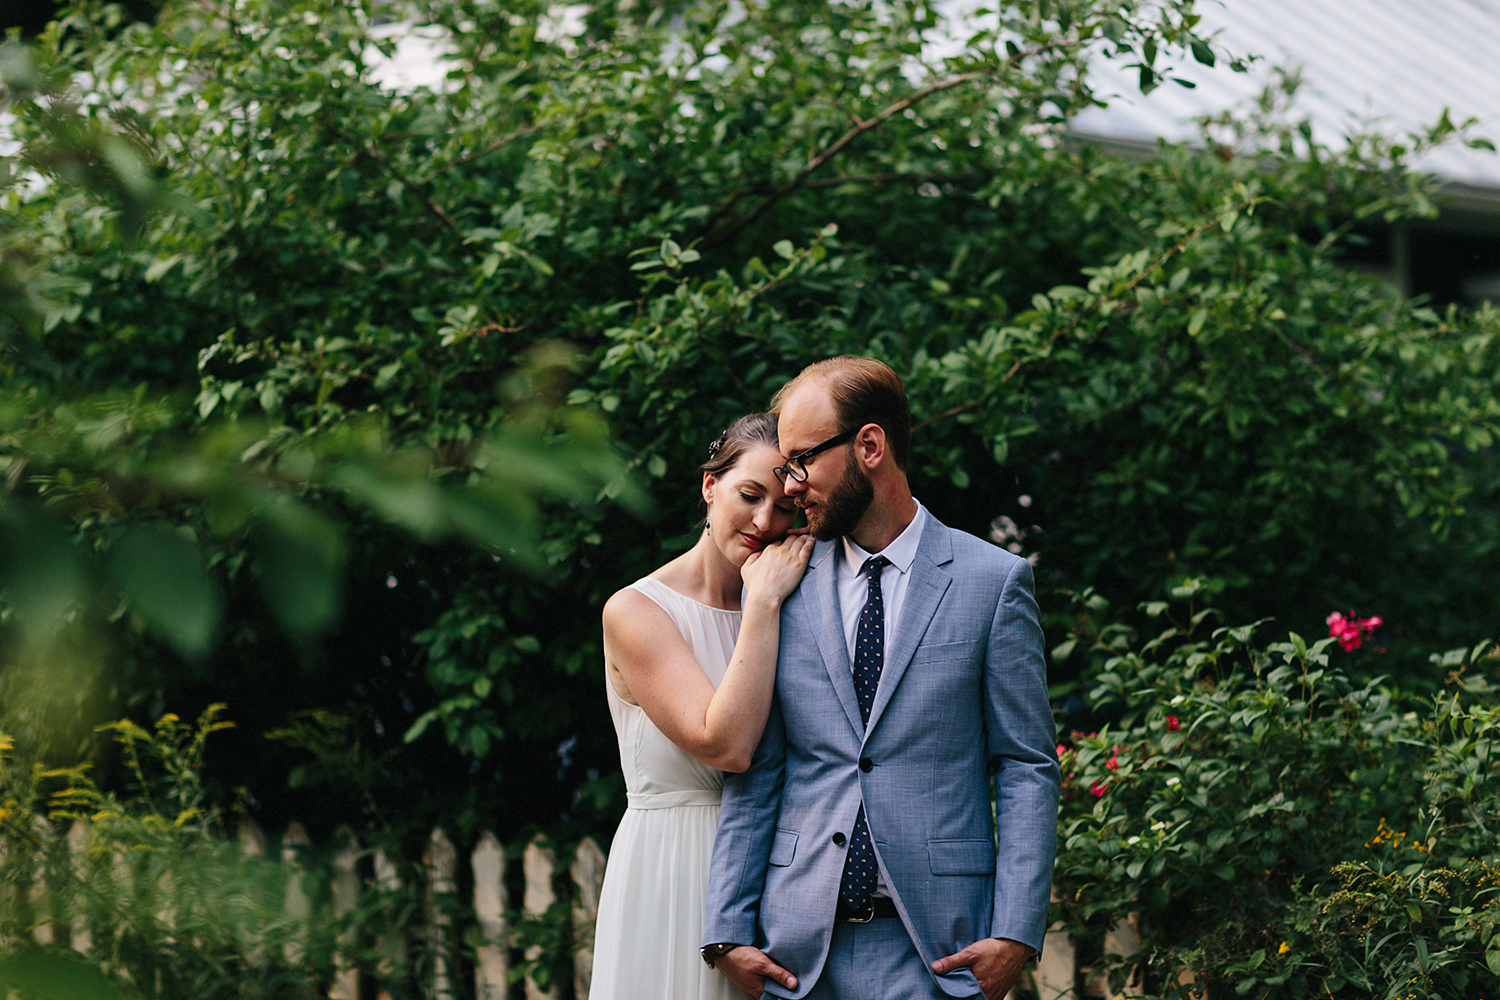 Toronto-Island-Best-Film-Wedding-Photographers-3b-photography-analog-photography-wards-island-clubhouse-green-wedding-shoes-vintage-venue-bride-and-groom-photos-intimate-photo-locations-in-nature-trees-greenery-houses-hug.jpg